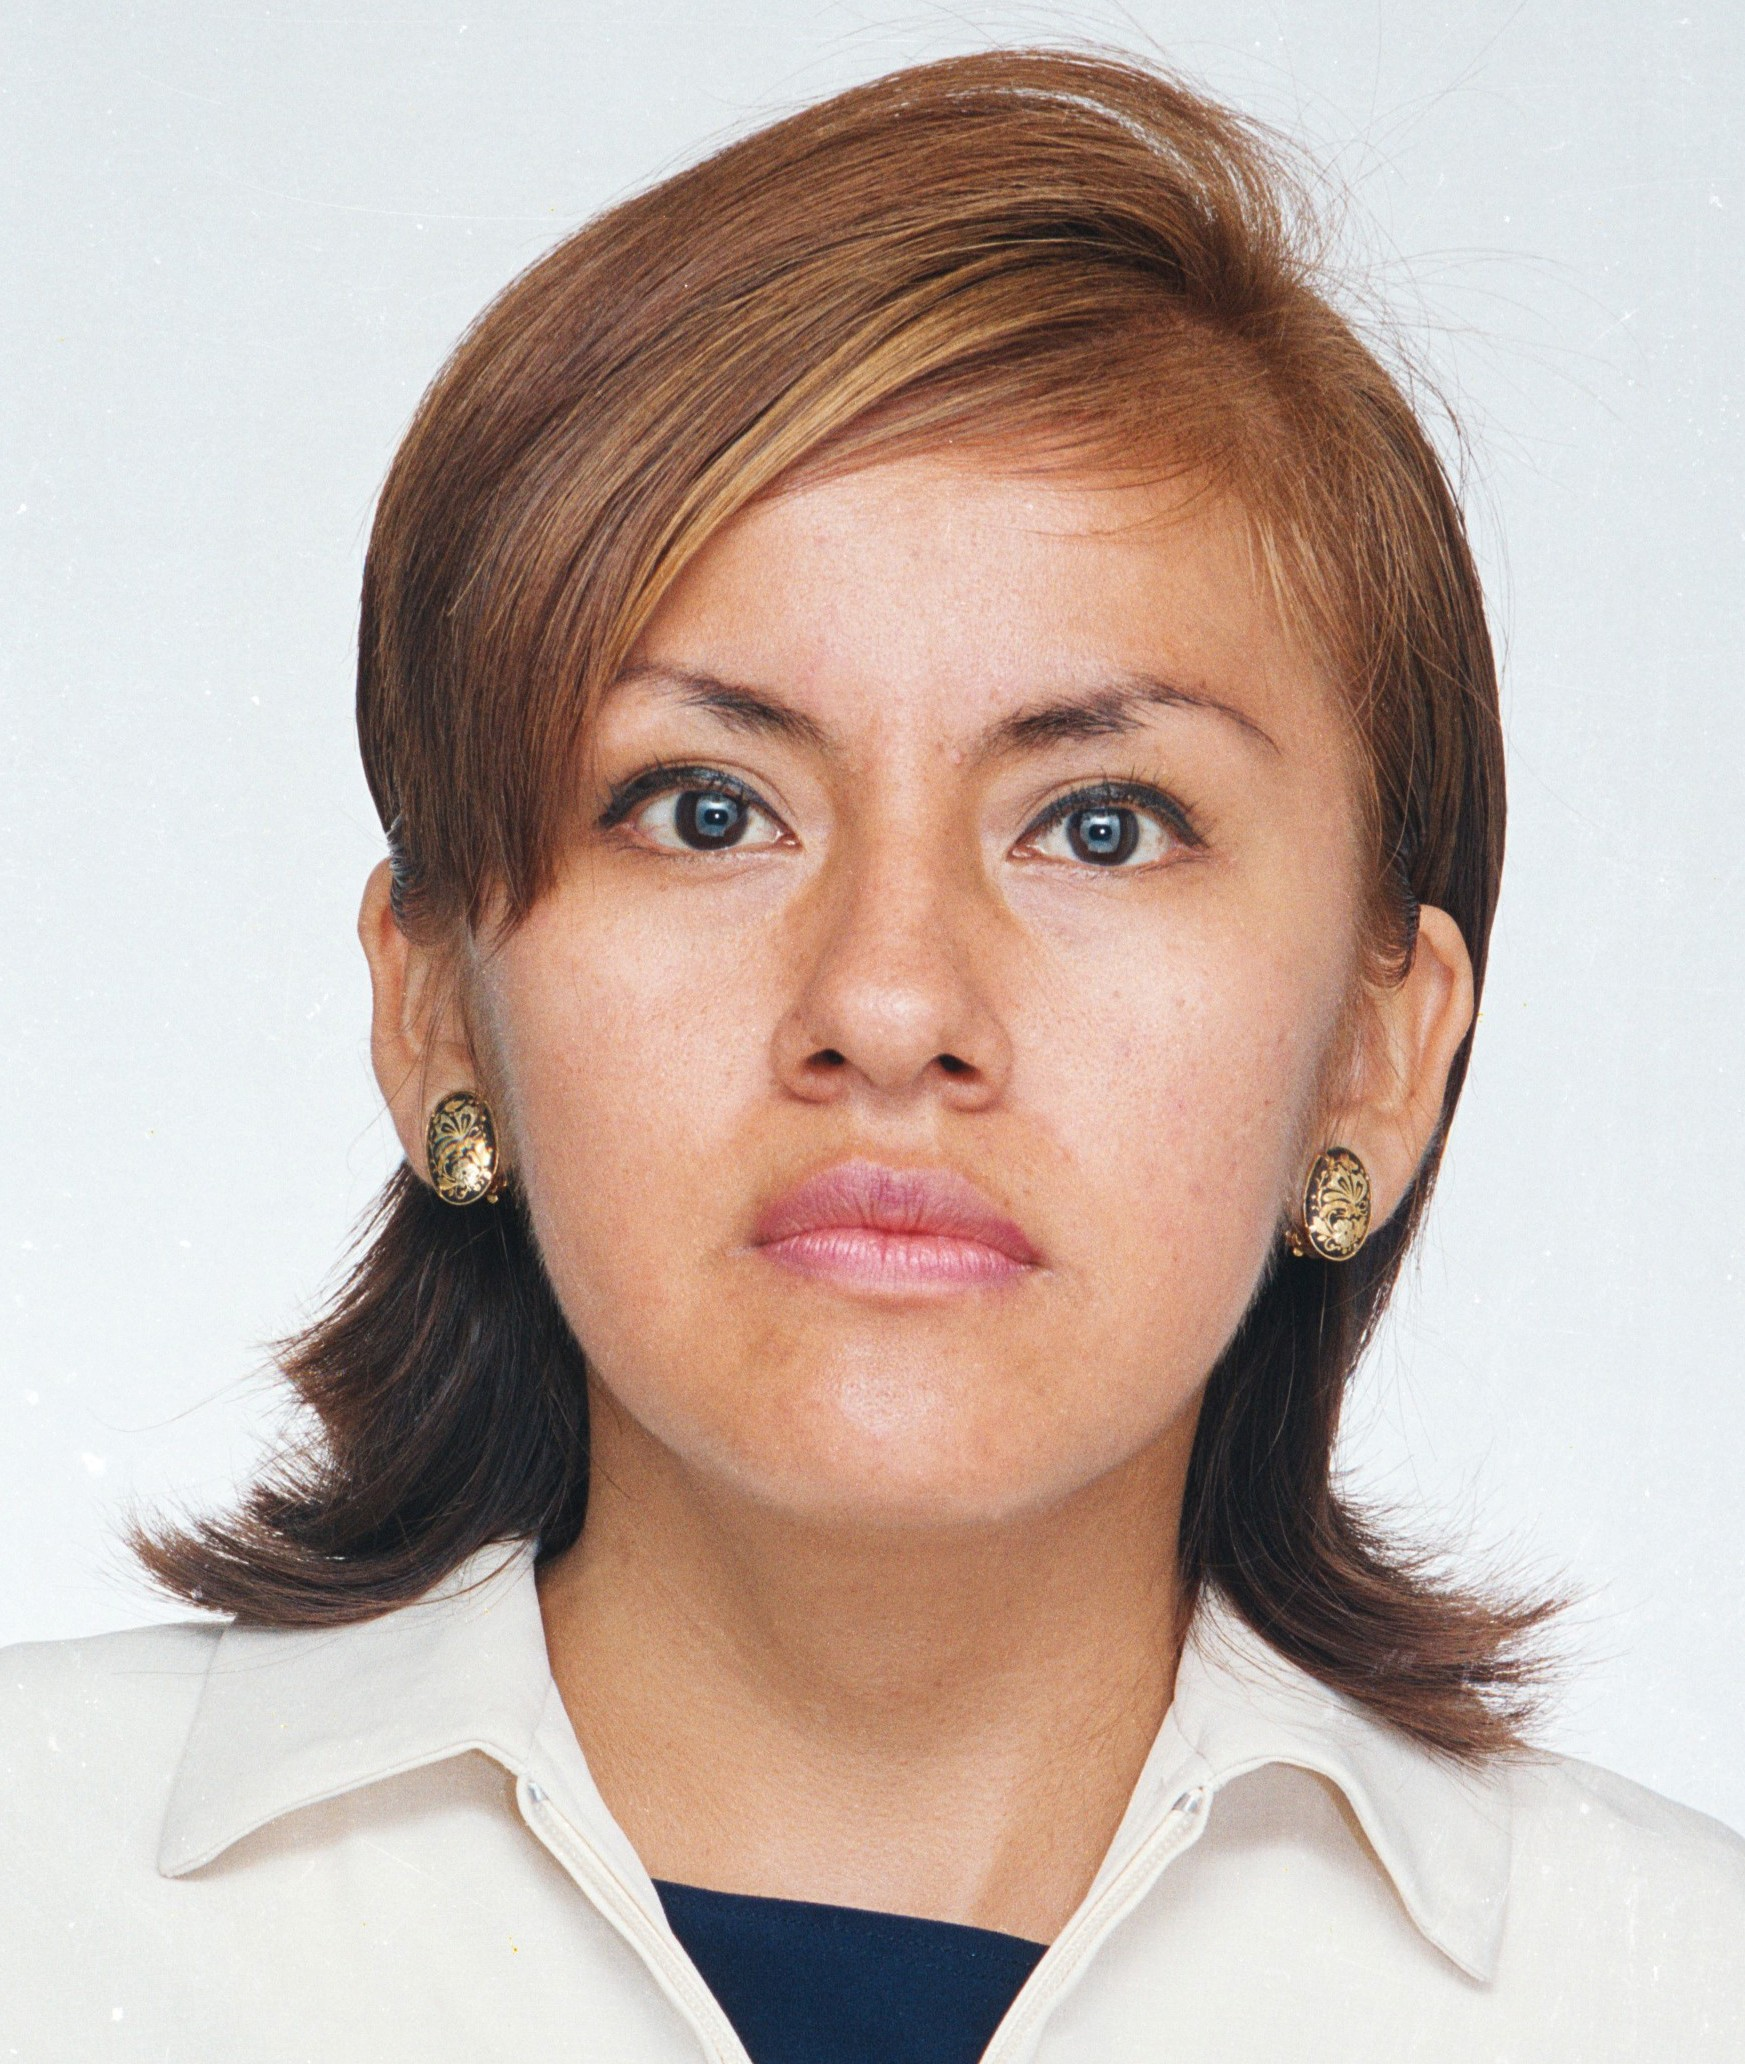 Photo of Maria Angelica Alvarez Paucar